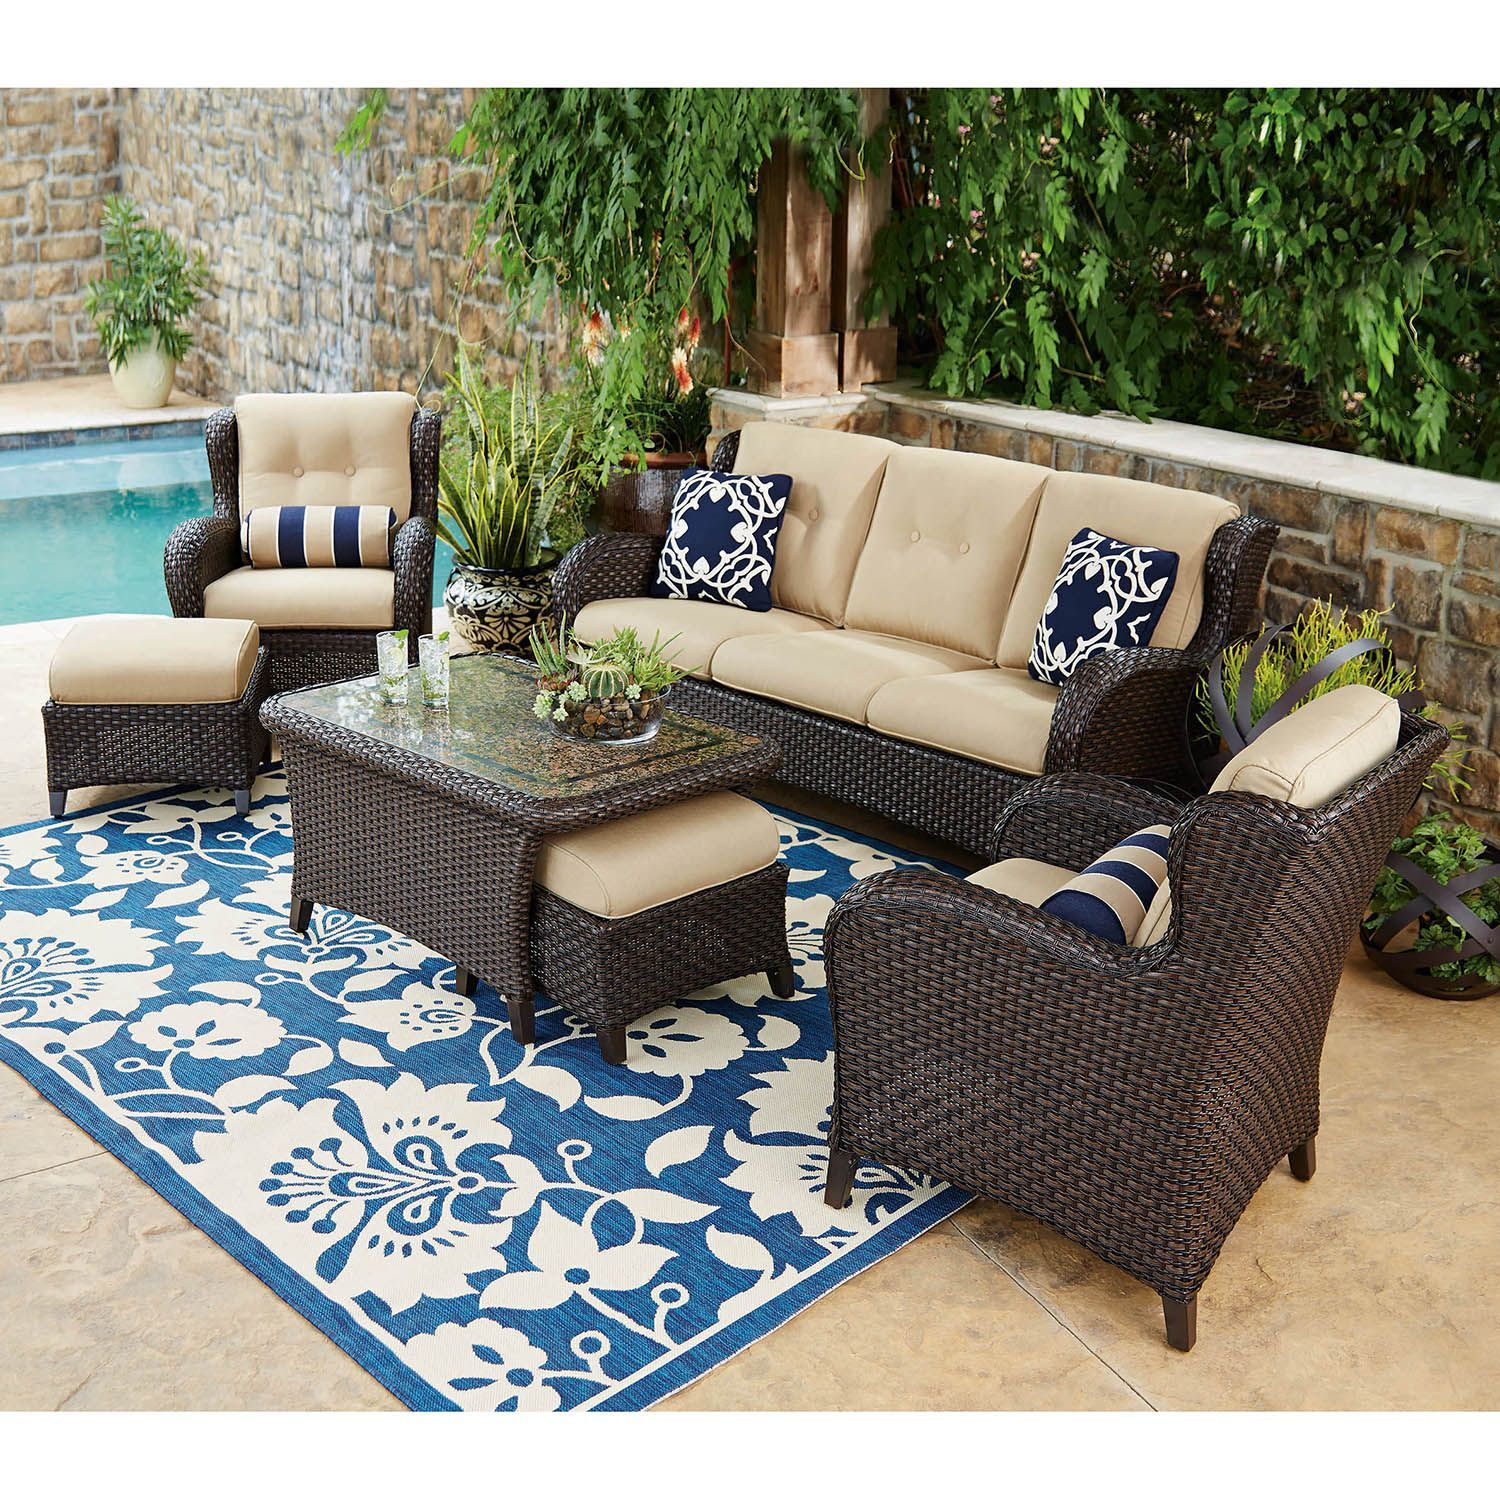 Namco Outdoor Furniture Best Modern Furniture Check more at